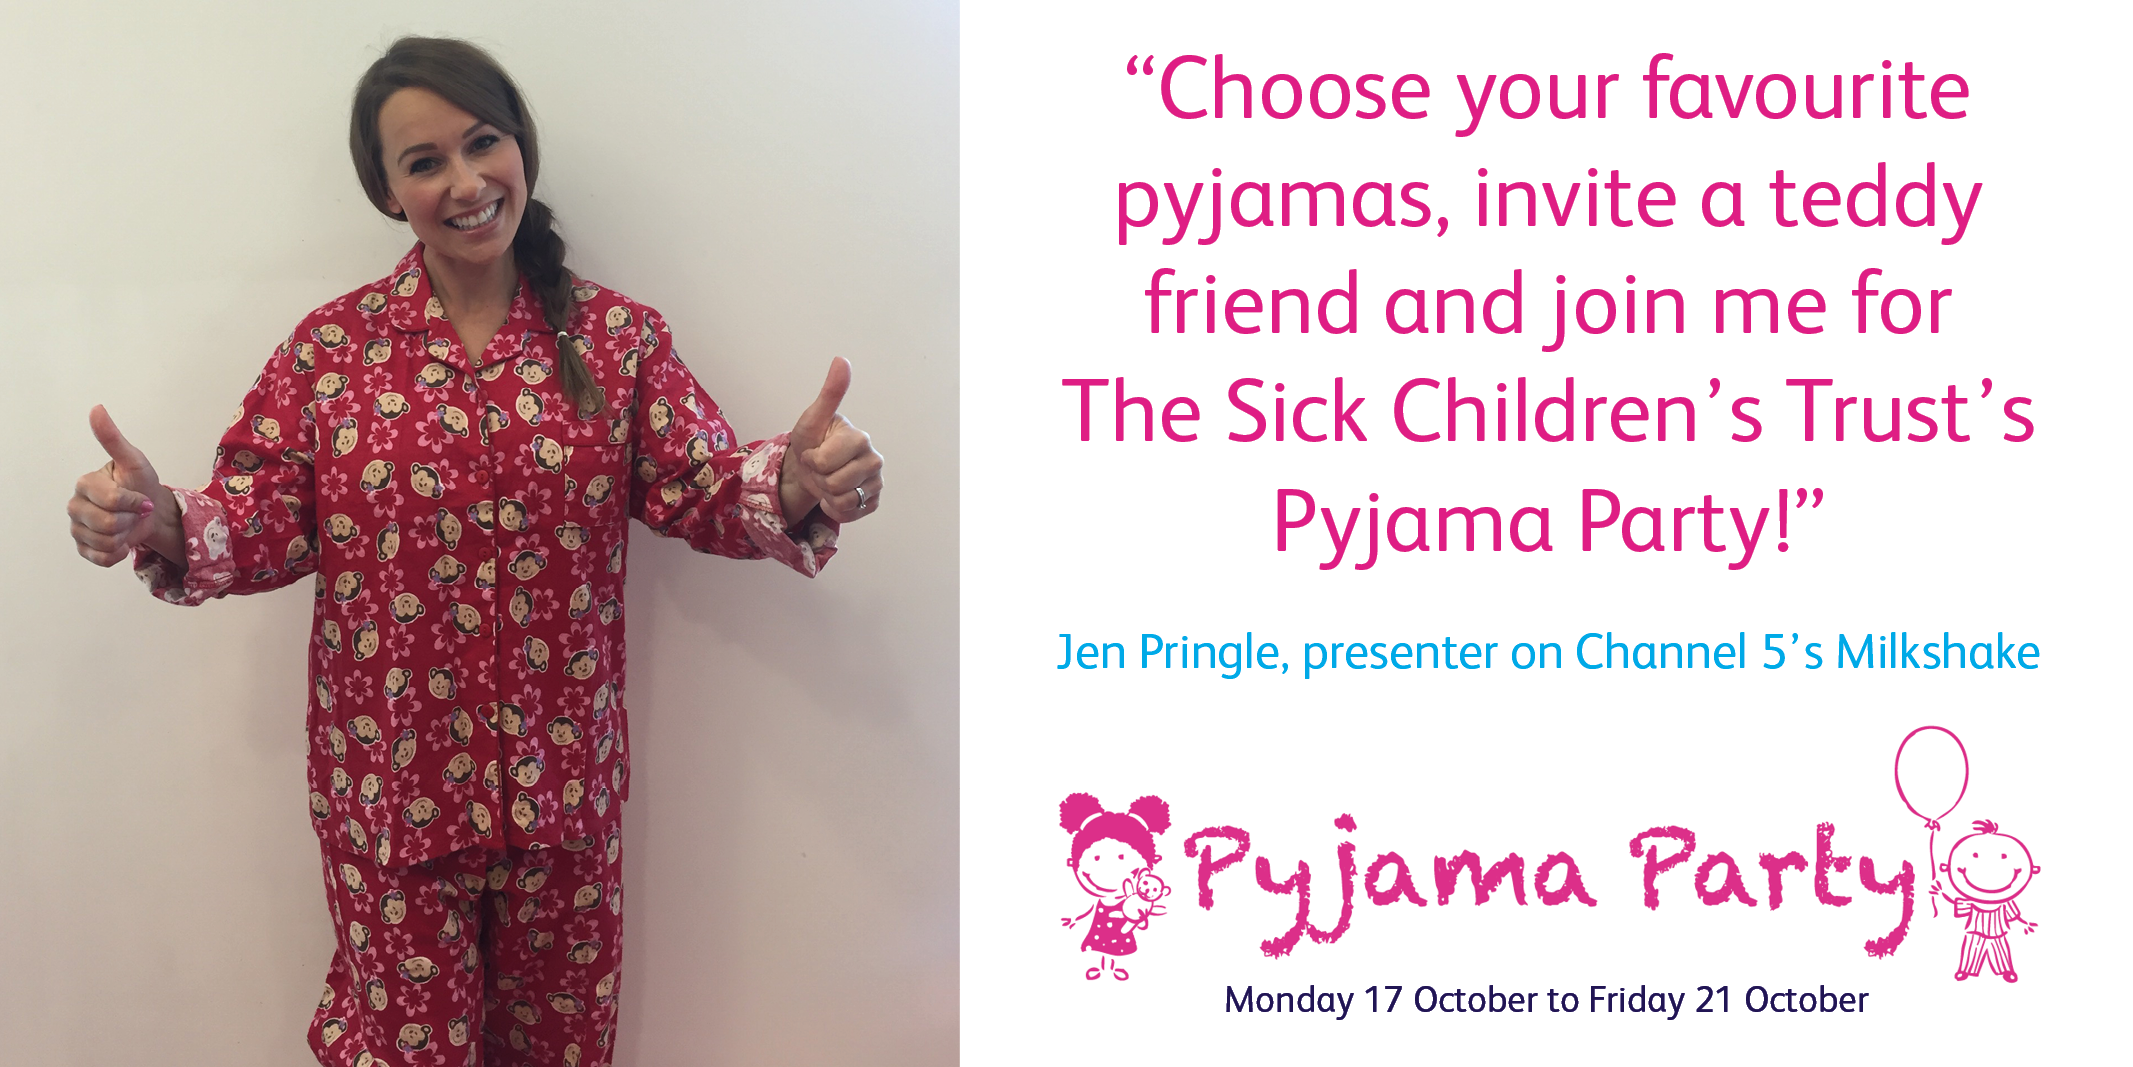 jen-pringle-pyjama-party